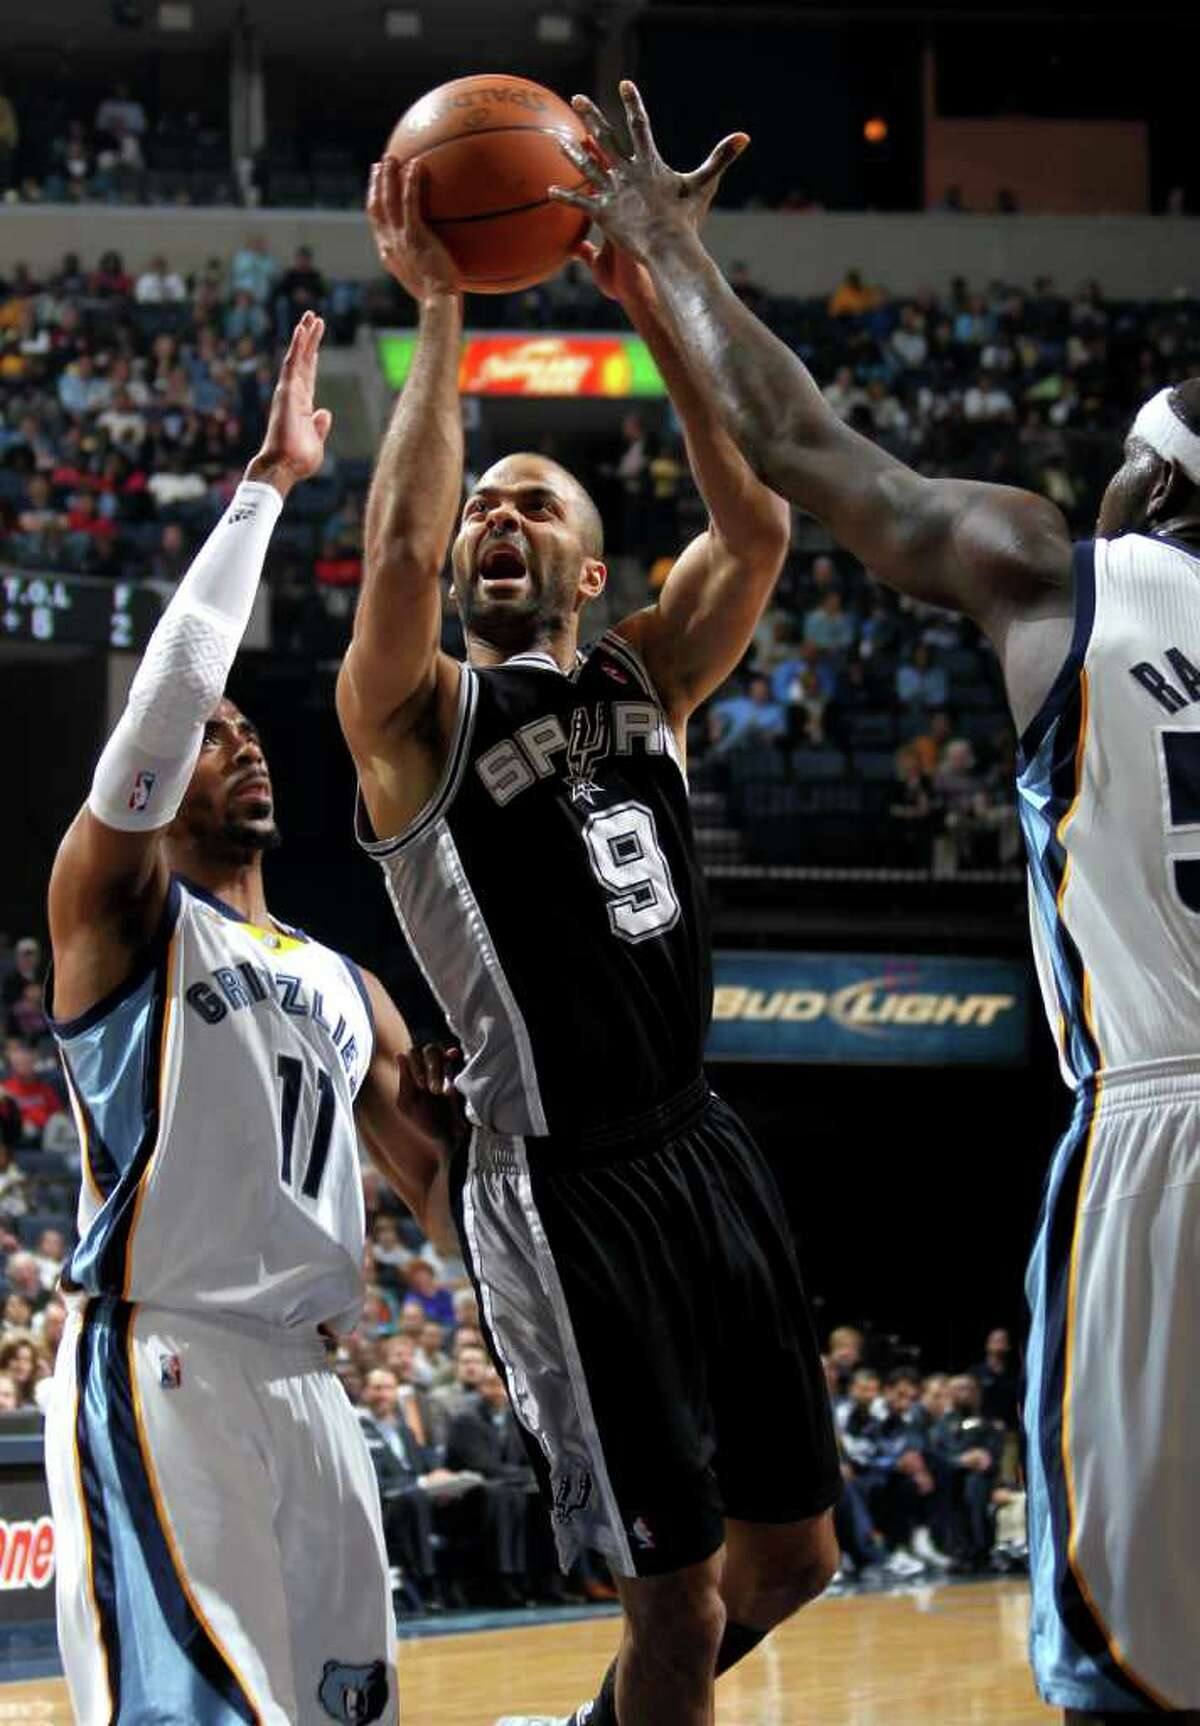 San Antonio Spurs guard Tony Parker, of France, (9), shoots between the defense of Memphis Grizzlies guard Mike Conley (11) and Memphis Grizzlies forward Zach Randolph, right, in the first half of an NBA basketball game Sunday, March 27, 2011, in Memphis, Tenn.